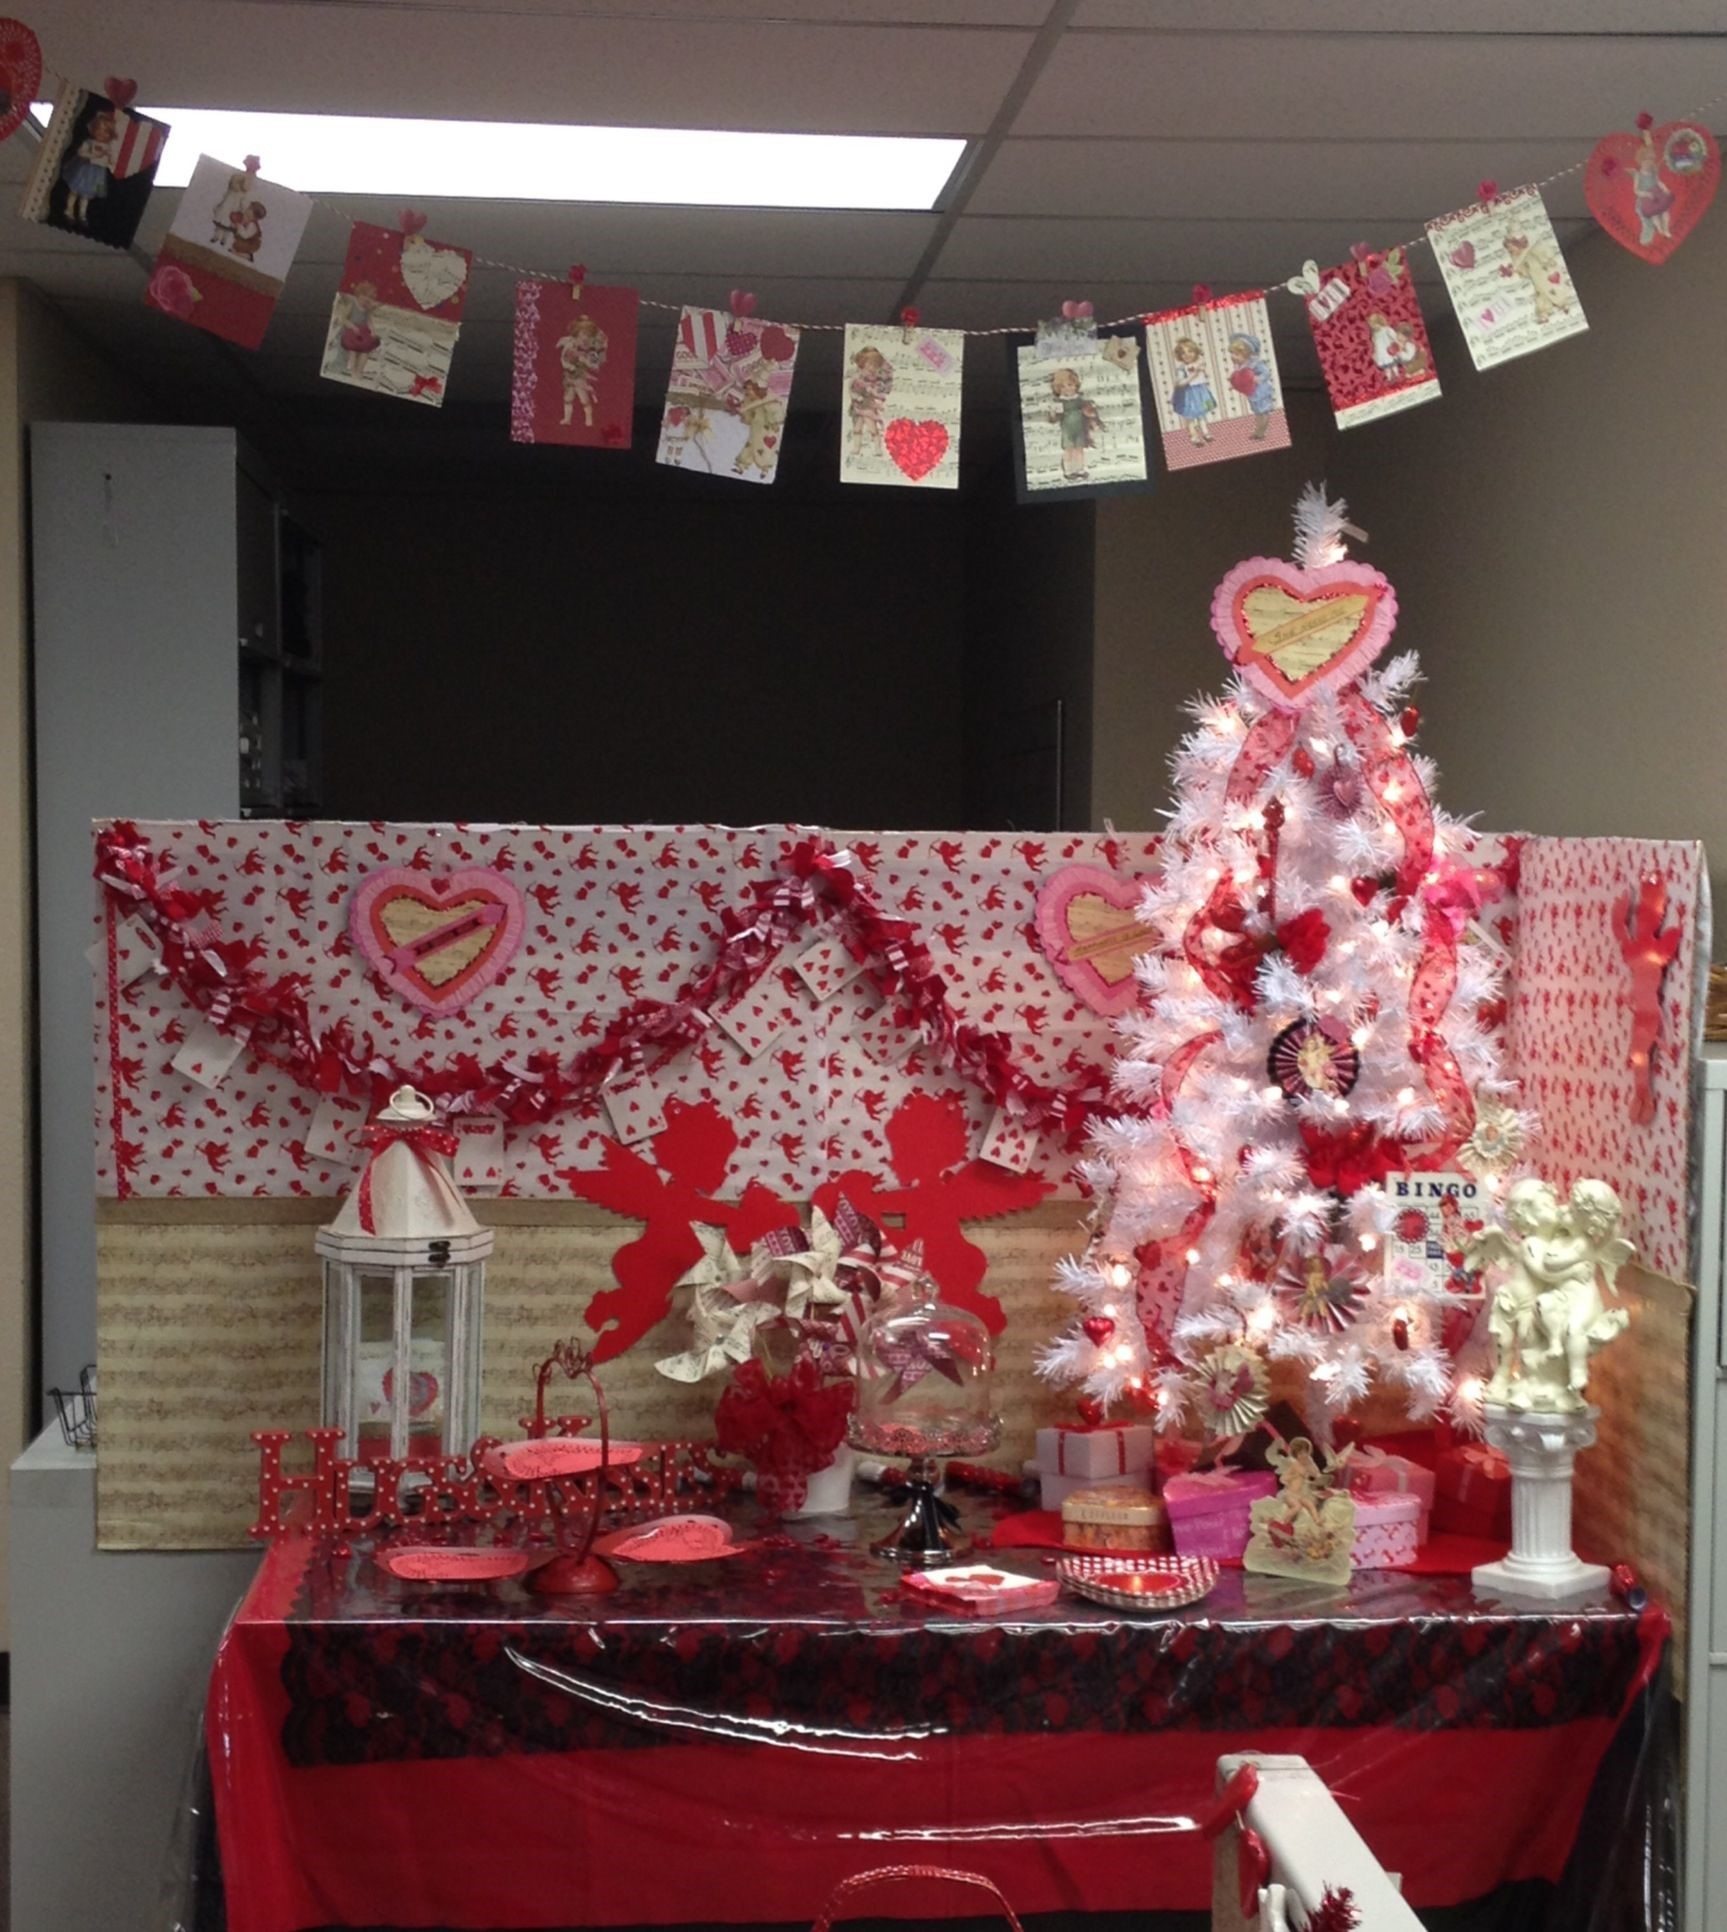 Valentine decorations in an office